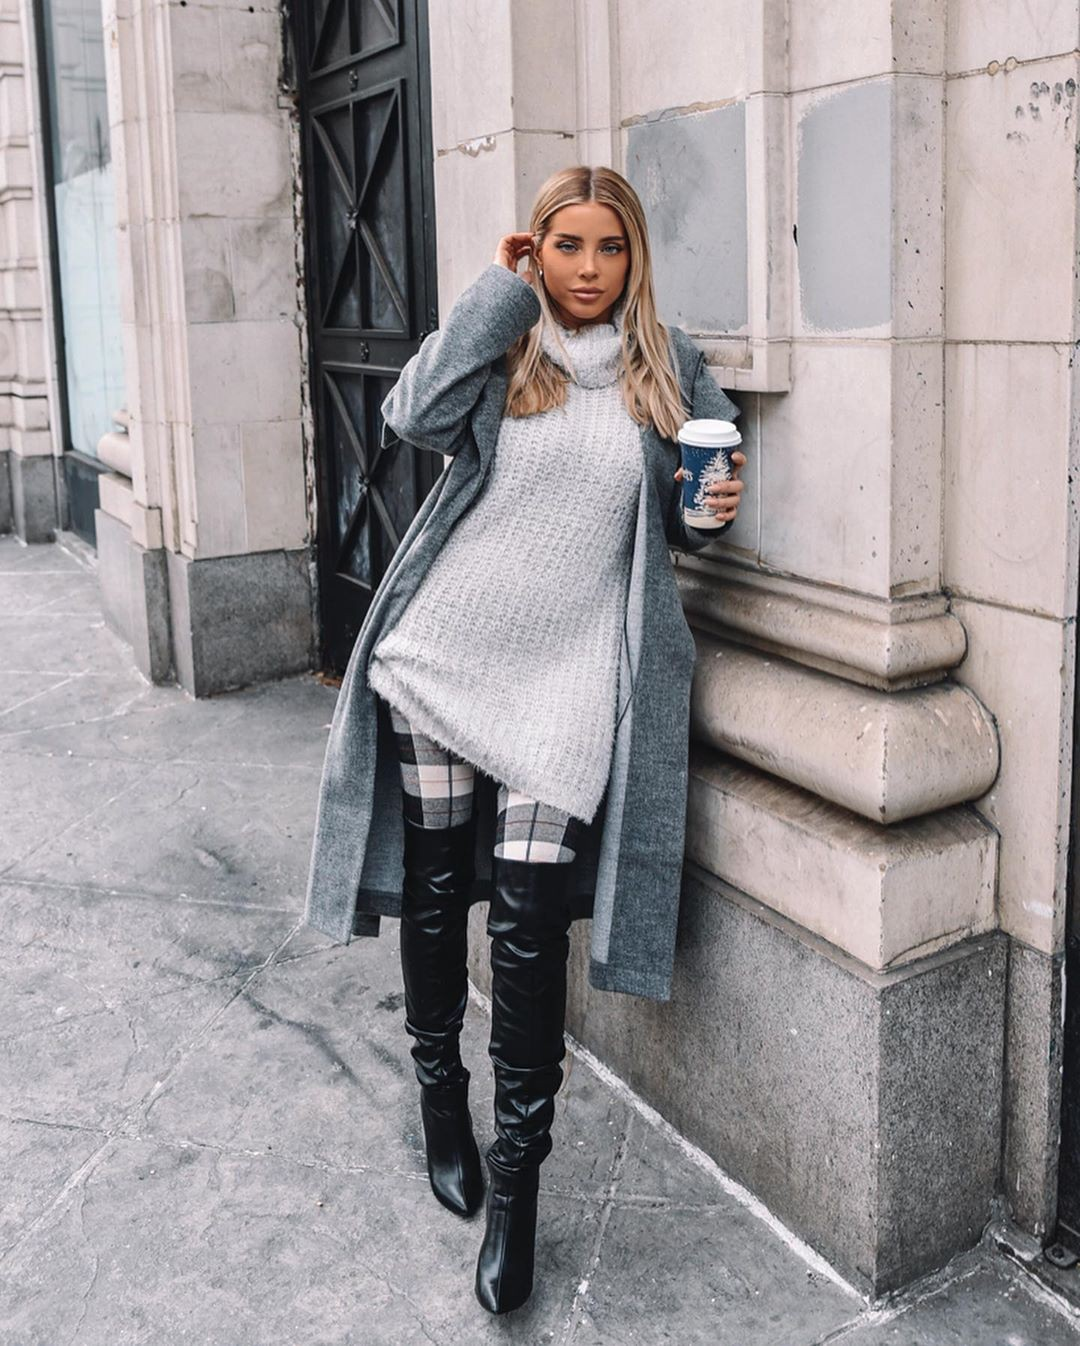 Jamie Stone knee-high boot, coat matching outfit, cute girls photos